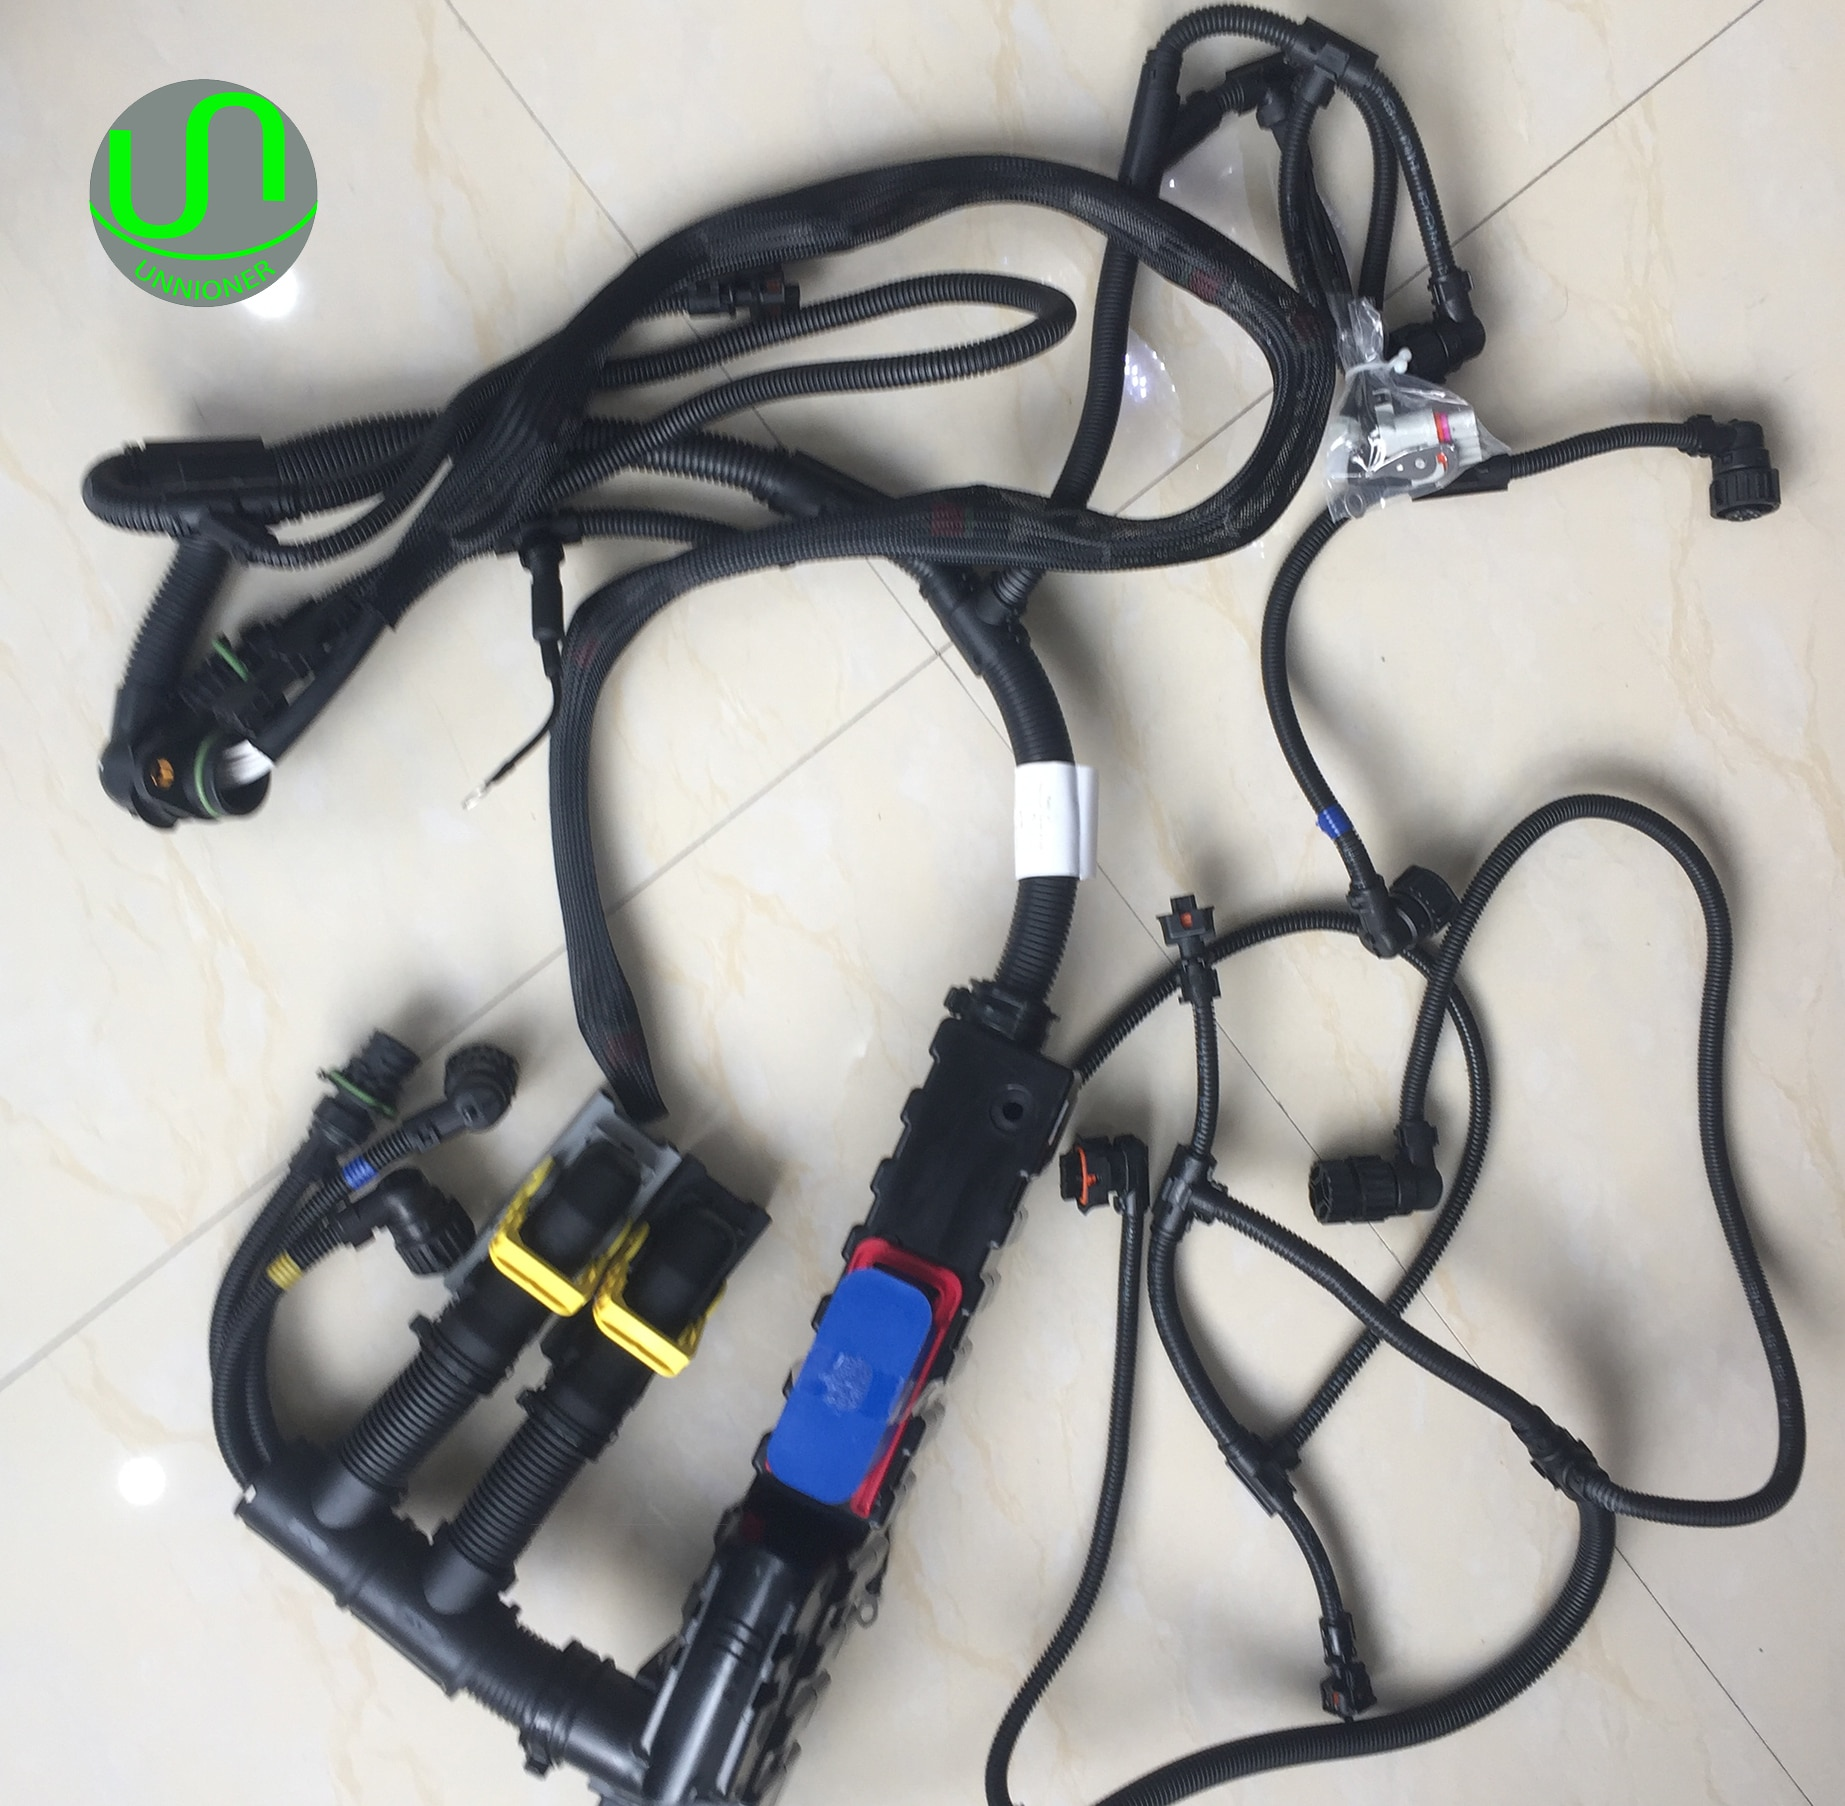 Engine Wiring Cable Harness 22018636 for VOLVO Heavy Truck enlarge